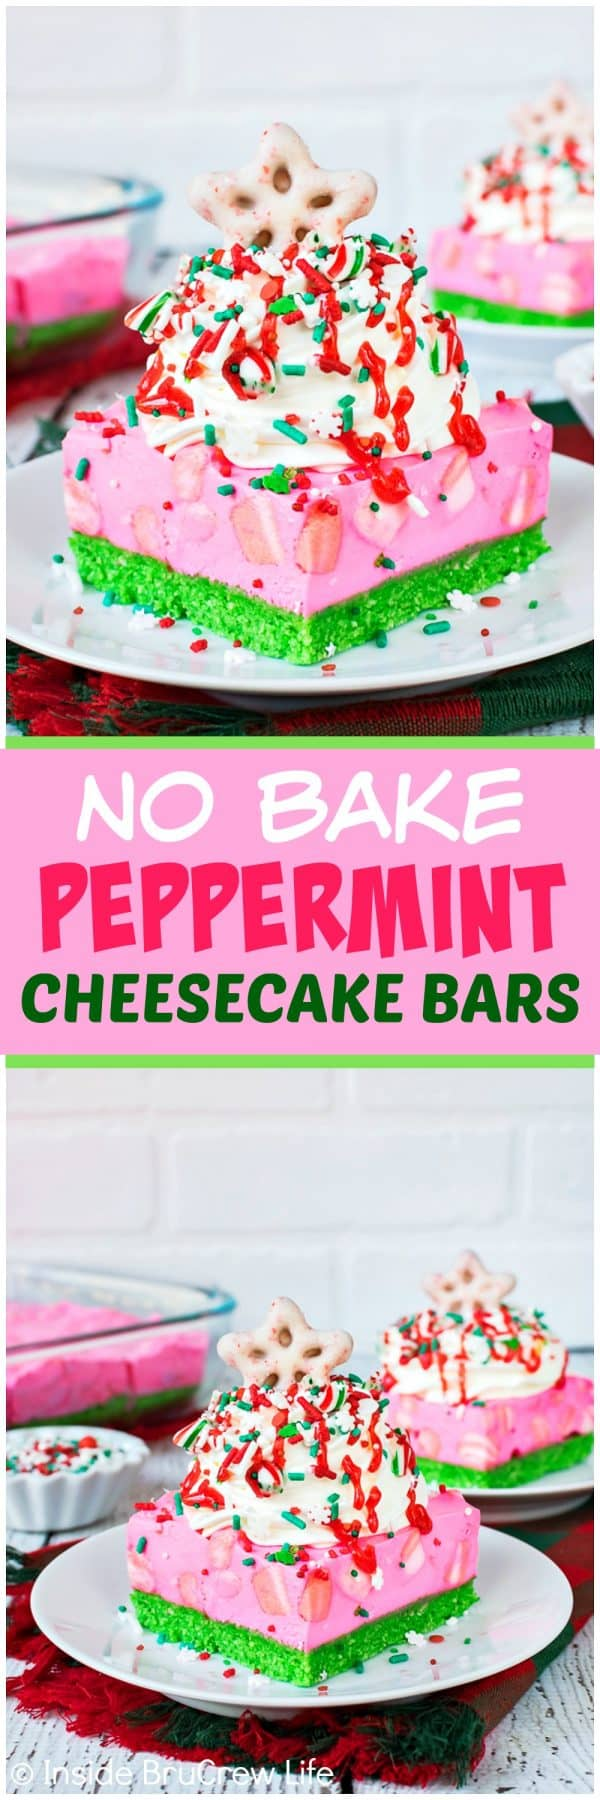 No Bake Peppermint Cheesecake Bars - bright colors and lots of sprinkles makes this pink fluffy cheesecake stand out at holiday parties. Easy no bake recipe for Christmas!